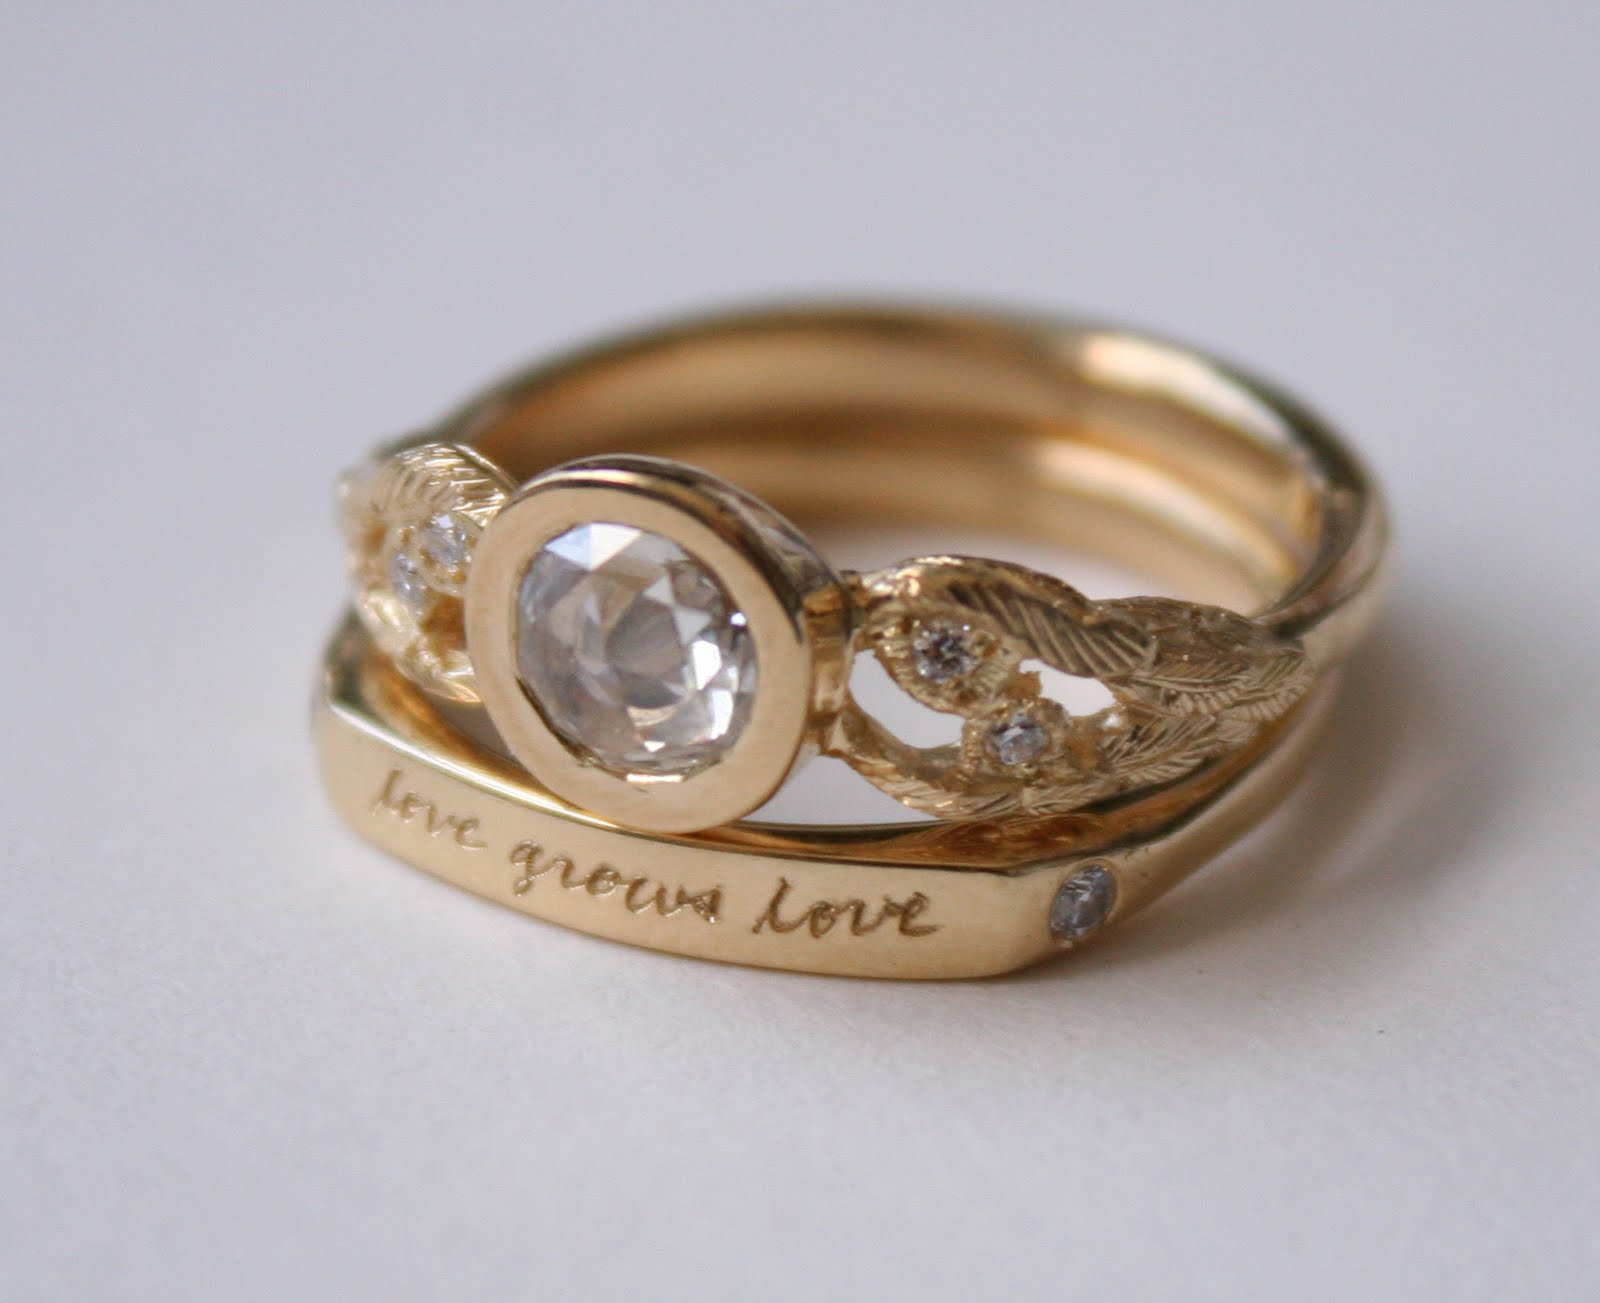 glimpse love grows love wedding ring set exclusive at twist in portland - Creative Wedding Rings